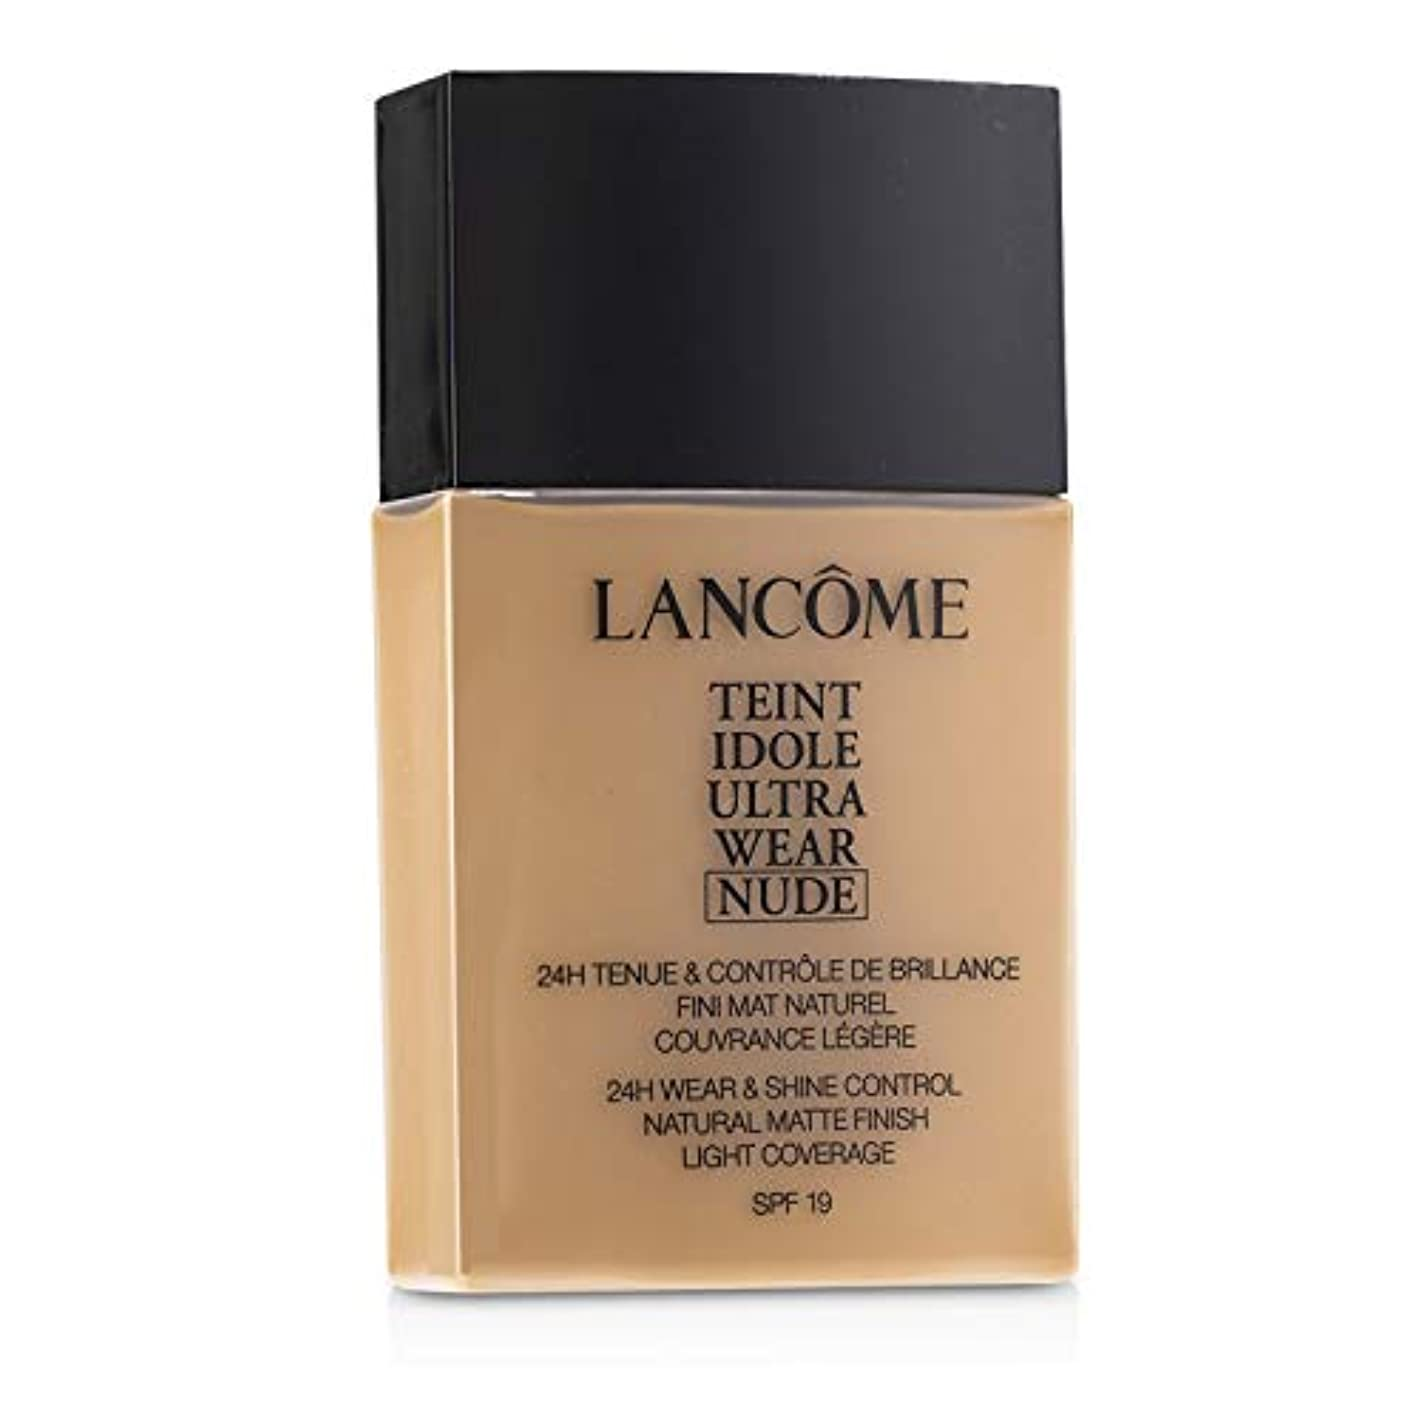 ランコム Teint Idole Ultra Wear Nude Foundation SPF19 - # 05 Beige Noisette 40ml/1.3oz並行輸入品